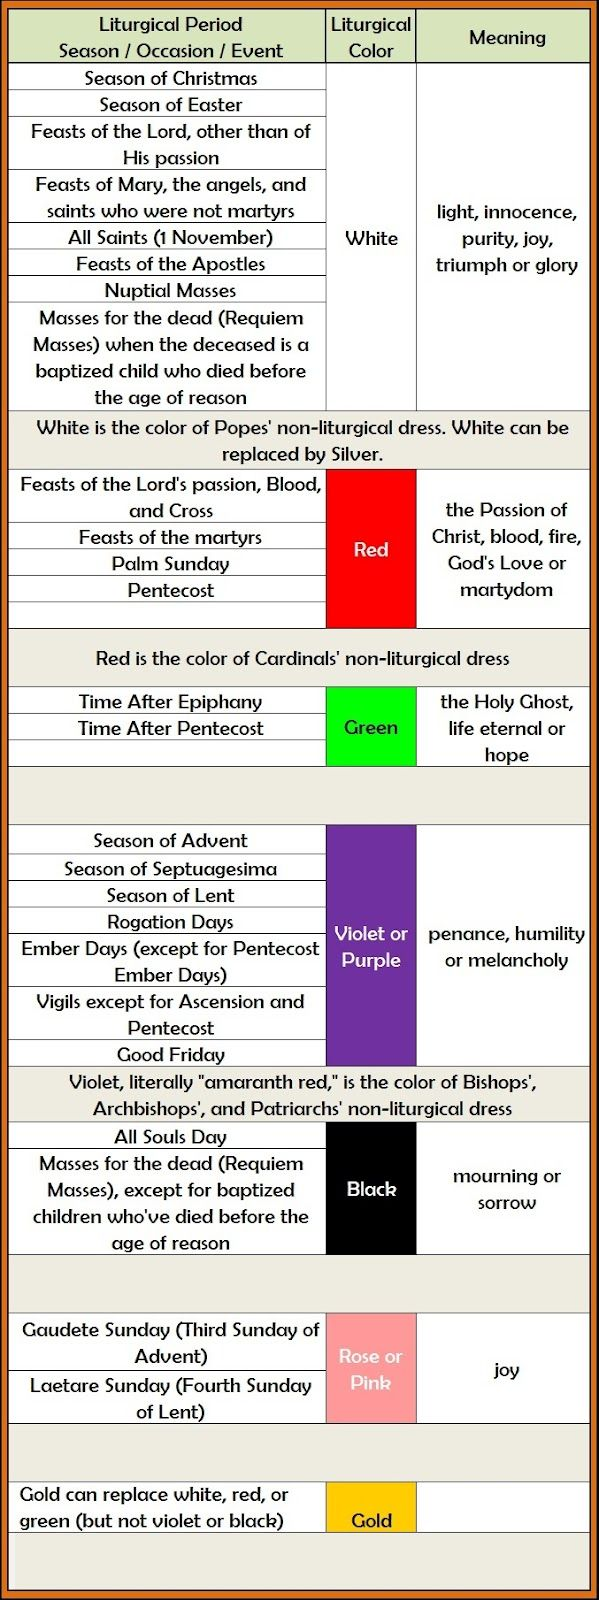 The symbolic meaning of liturgical colors in the Catholic Church. Kids can make a bracelet here to remember http://www.loyolapress.com/color-symbol-bracelet-colors-in-catholic-church.htm